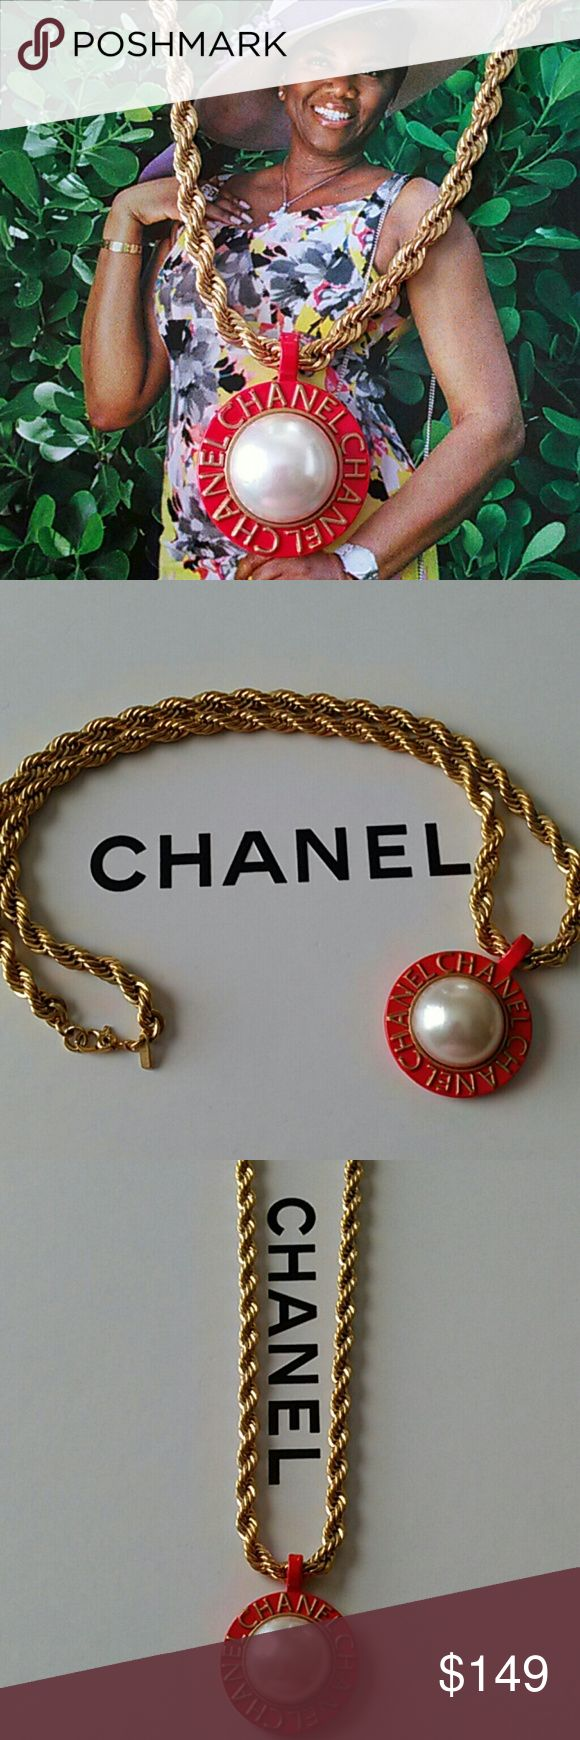 "Vintage CHANEL Pendant Beautiful and in excellent condition!  Vintage Chanel pendant is red and gold with a faux pearl at its center. I placed this on a vintage Monet rope chain, thick and gorgeous! Excellent vintage condition with the length at 18"". Pendant is 1 7/8"" from bail but is 1"" in circumference. CHANEL Jewelry"